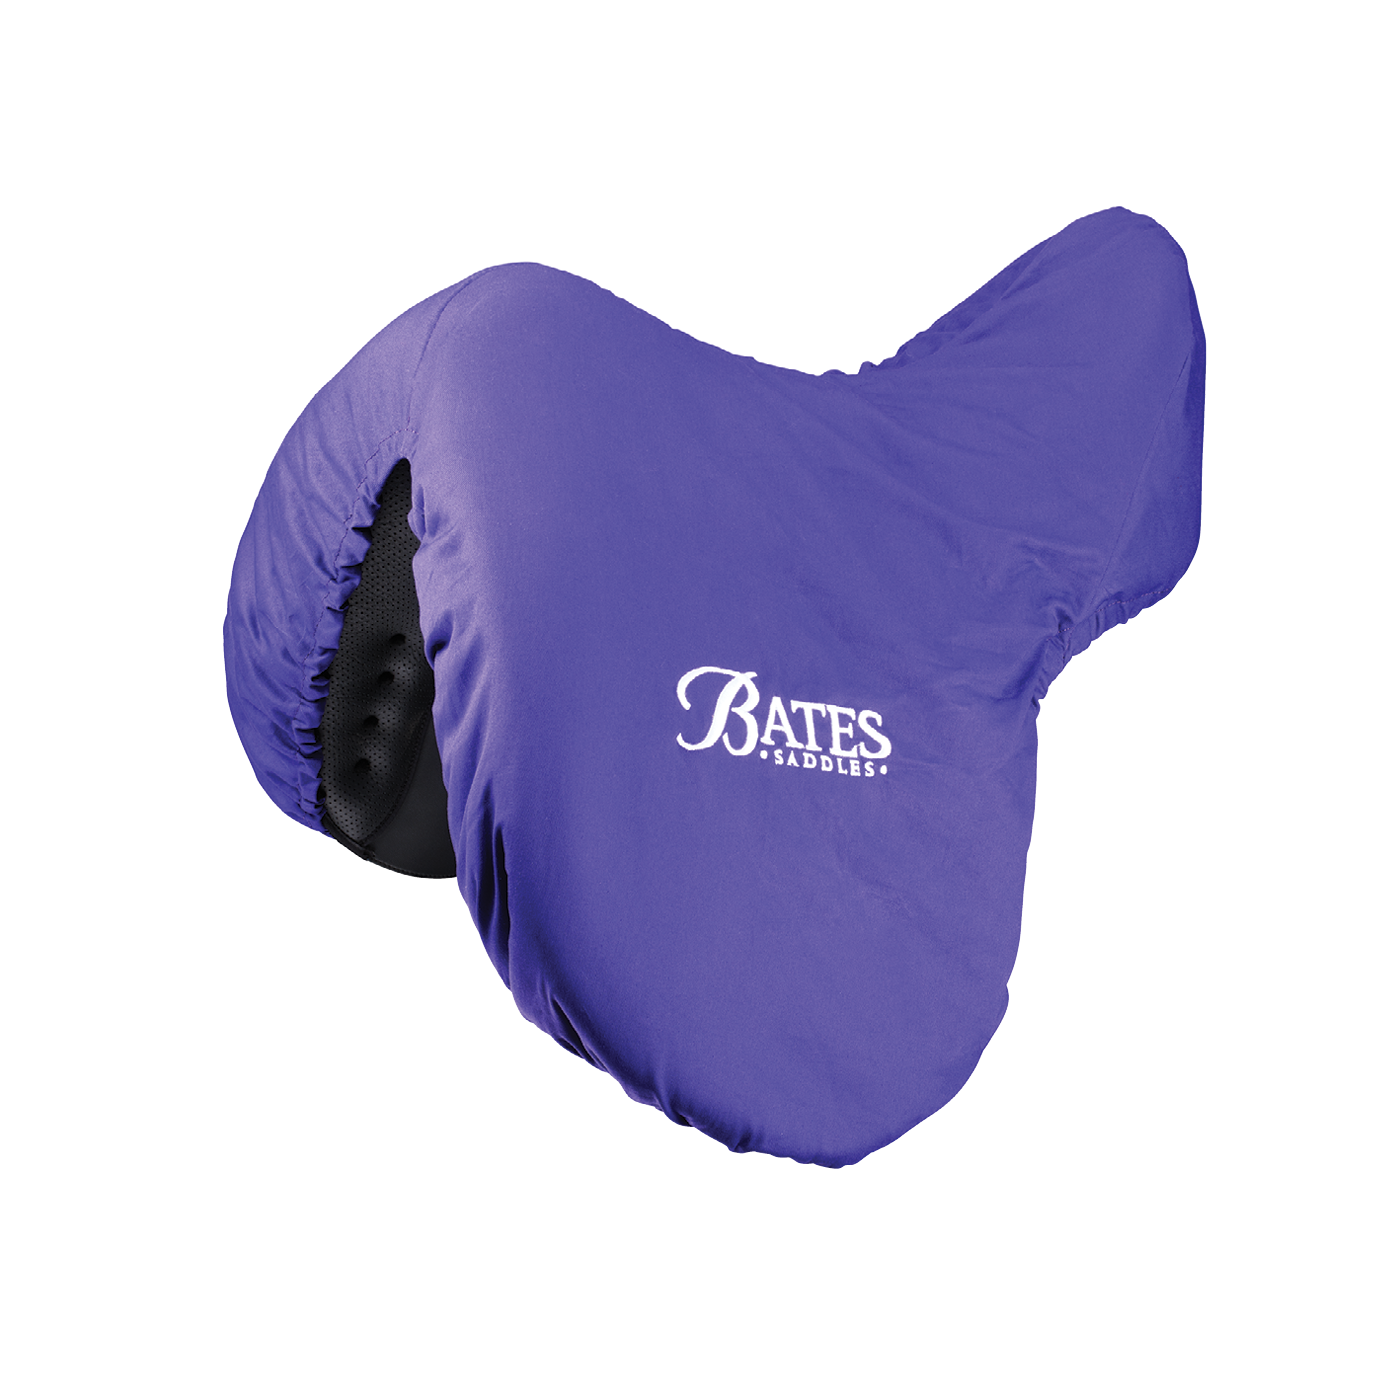 Bates Deluxe Saddle Cover - 619:32593784701024